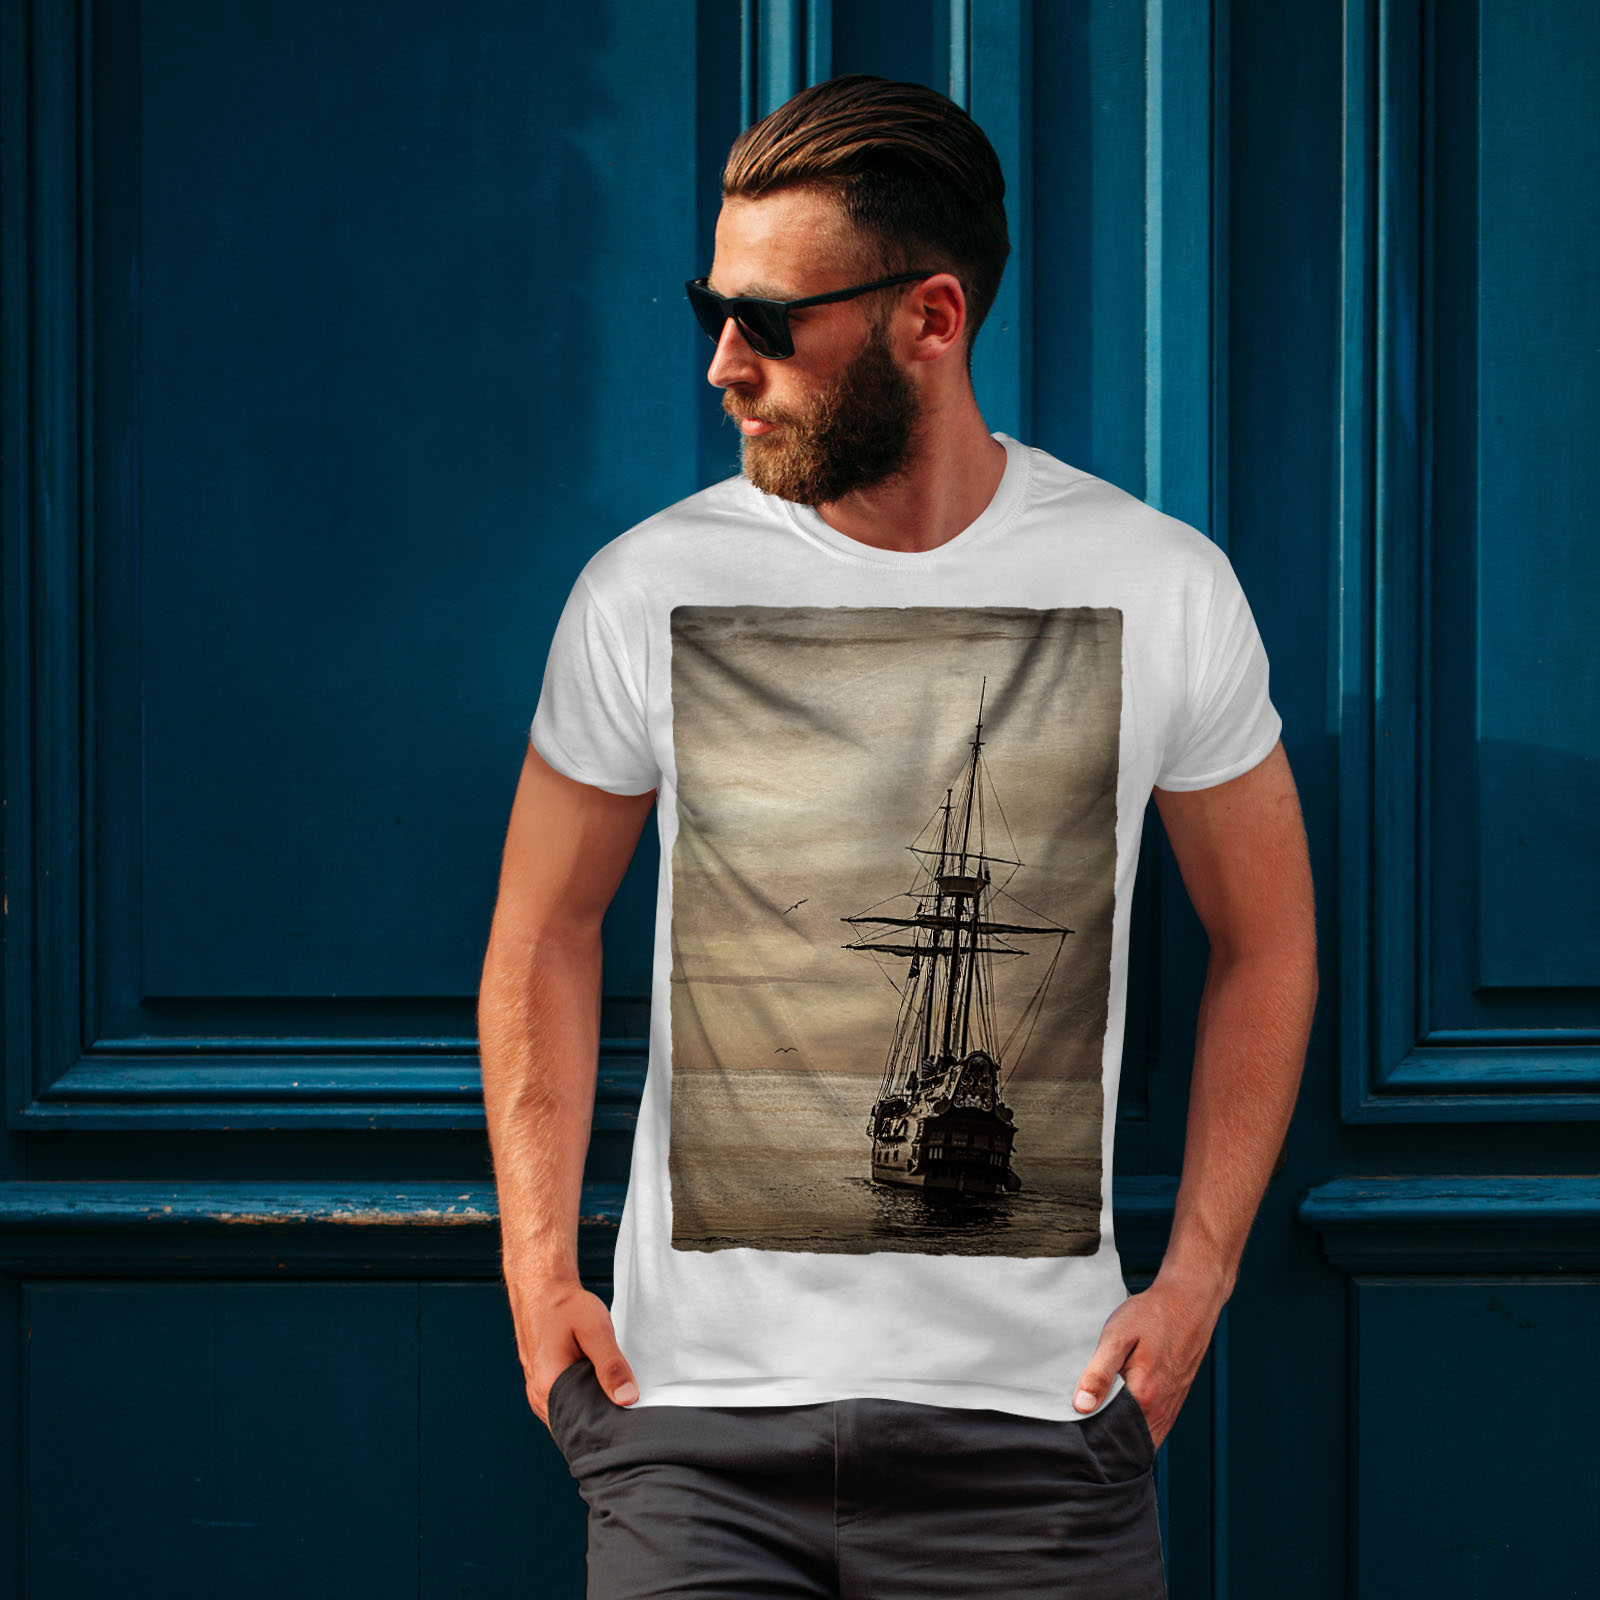 Wellcoda-Ship-Old-Ocean-Vintage-Mens-T-shirt-Sea-Graphic-Design-Printed-Tee thumbnail 10